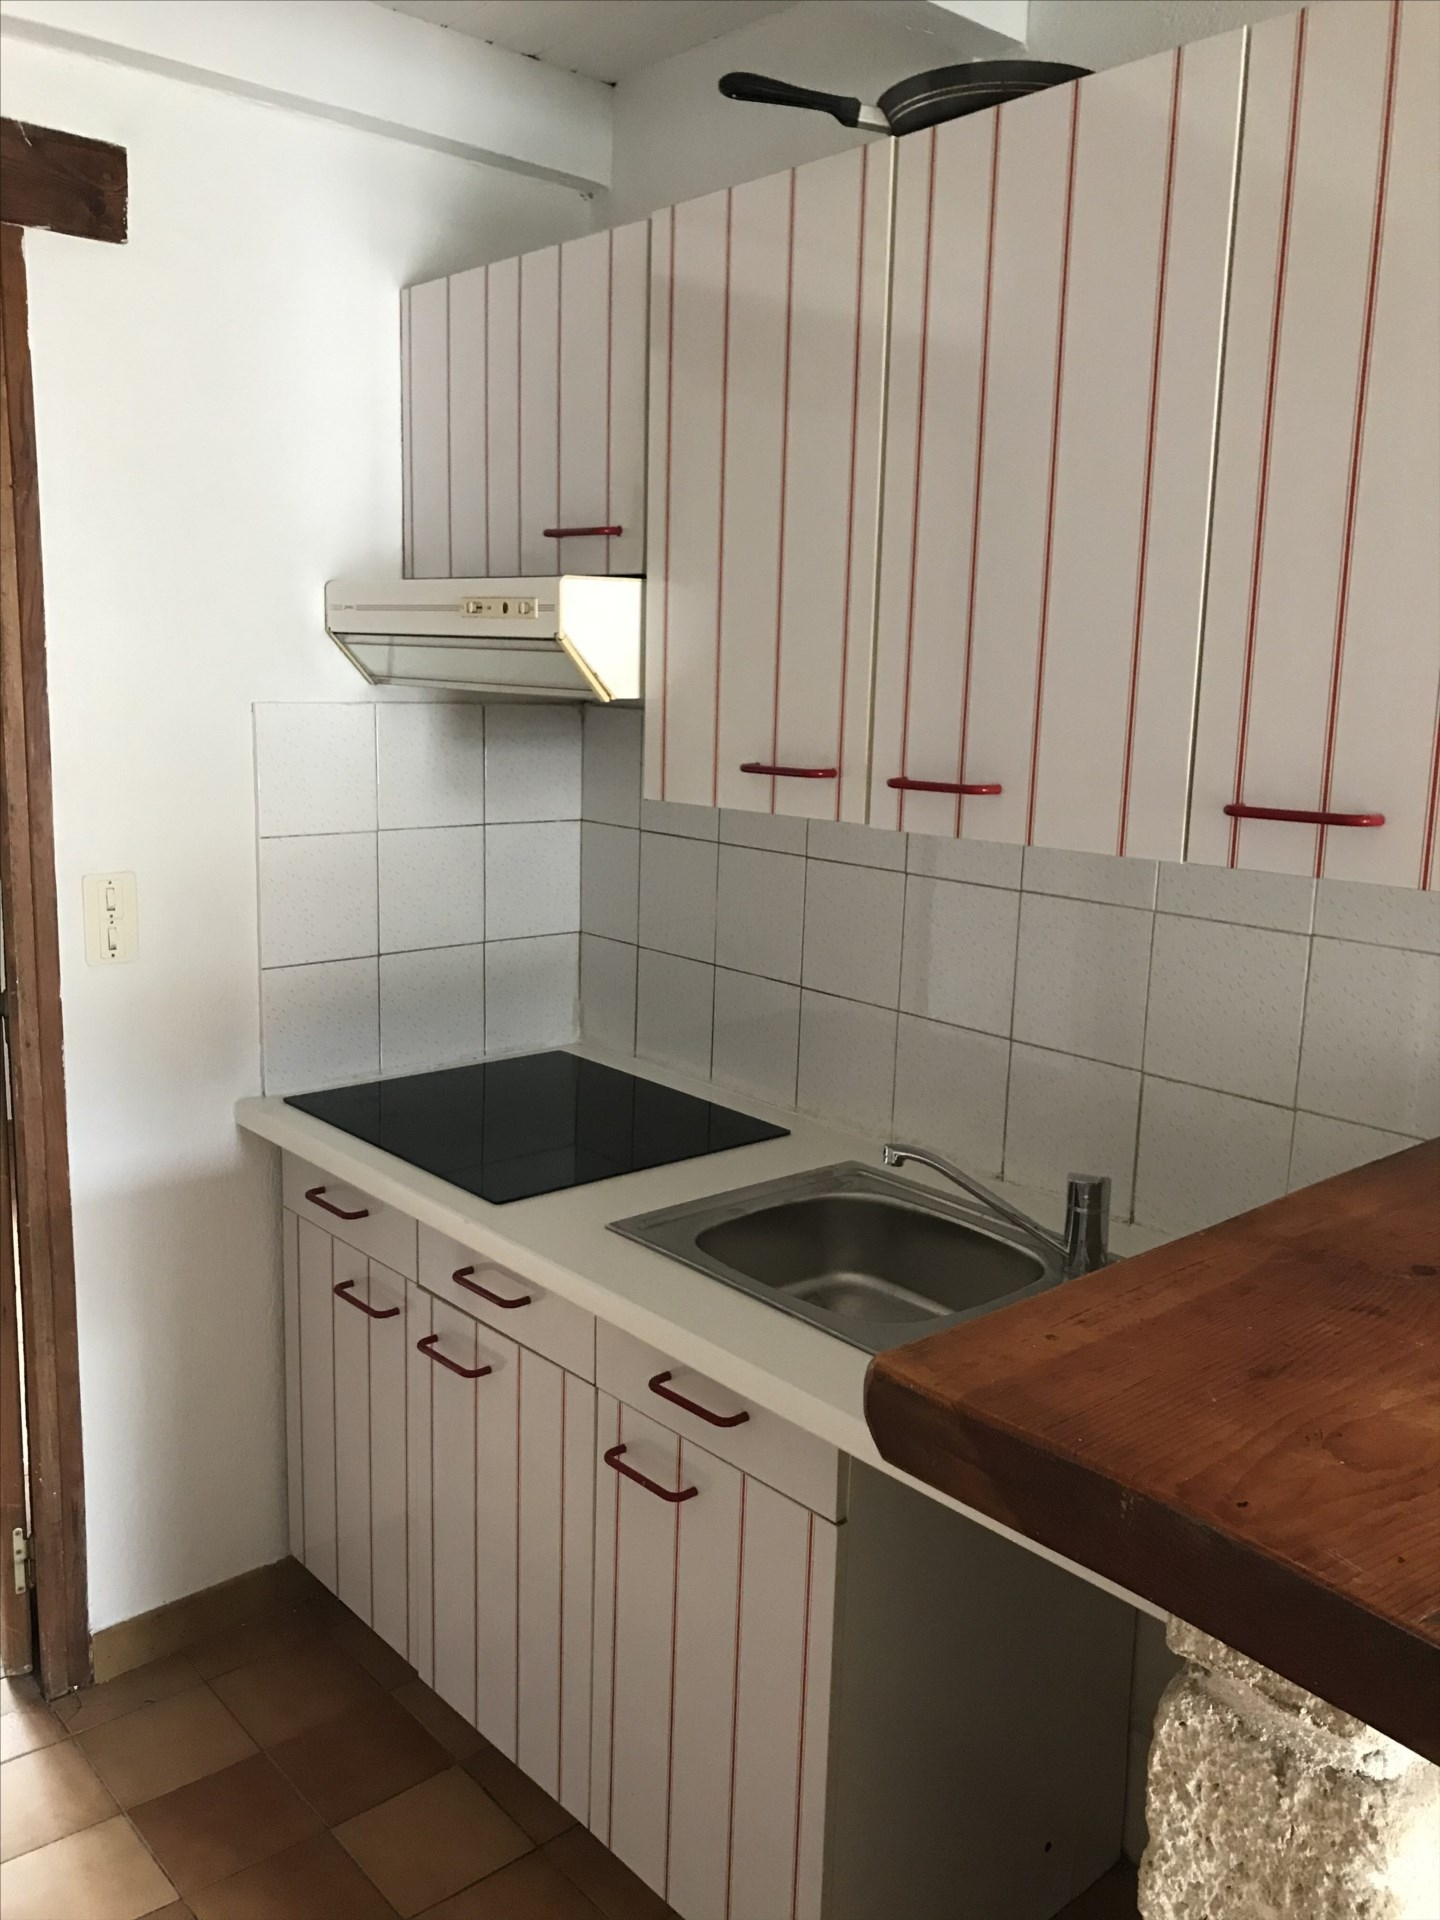 Location Appartement MONTPELLIER individuel chauffage